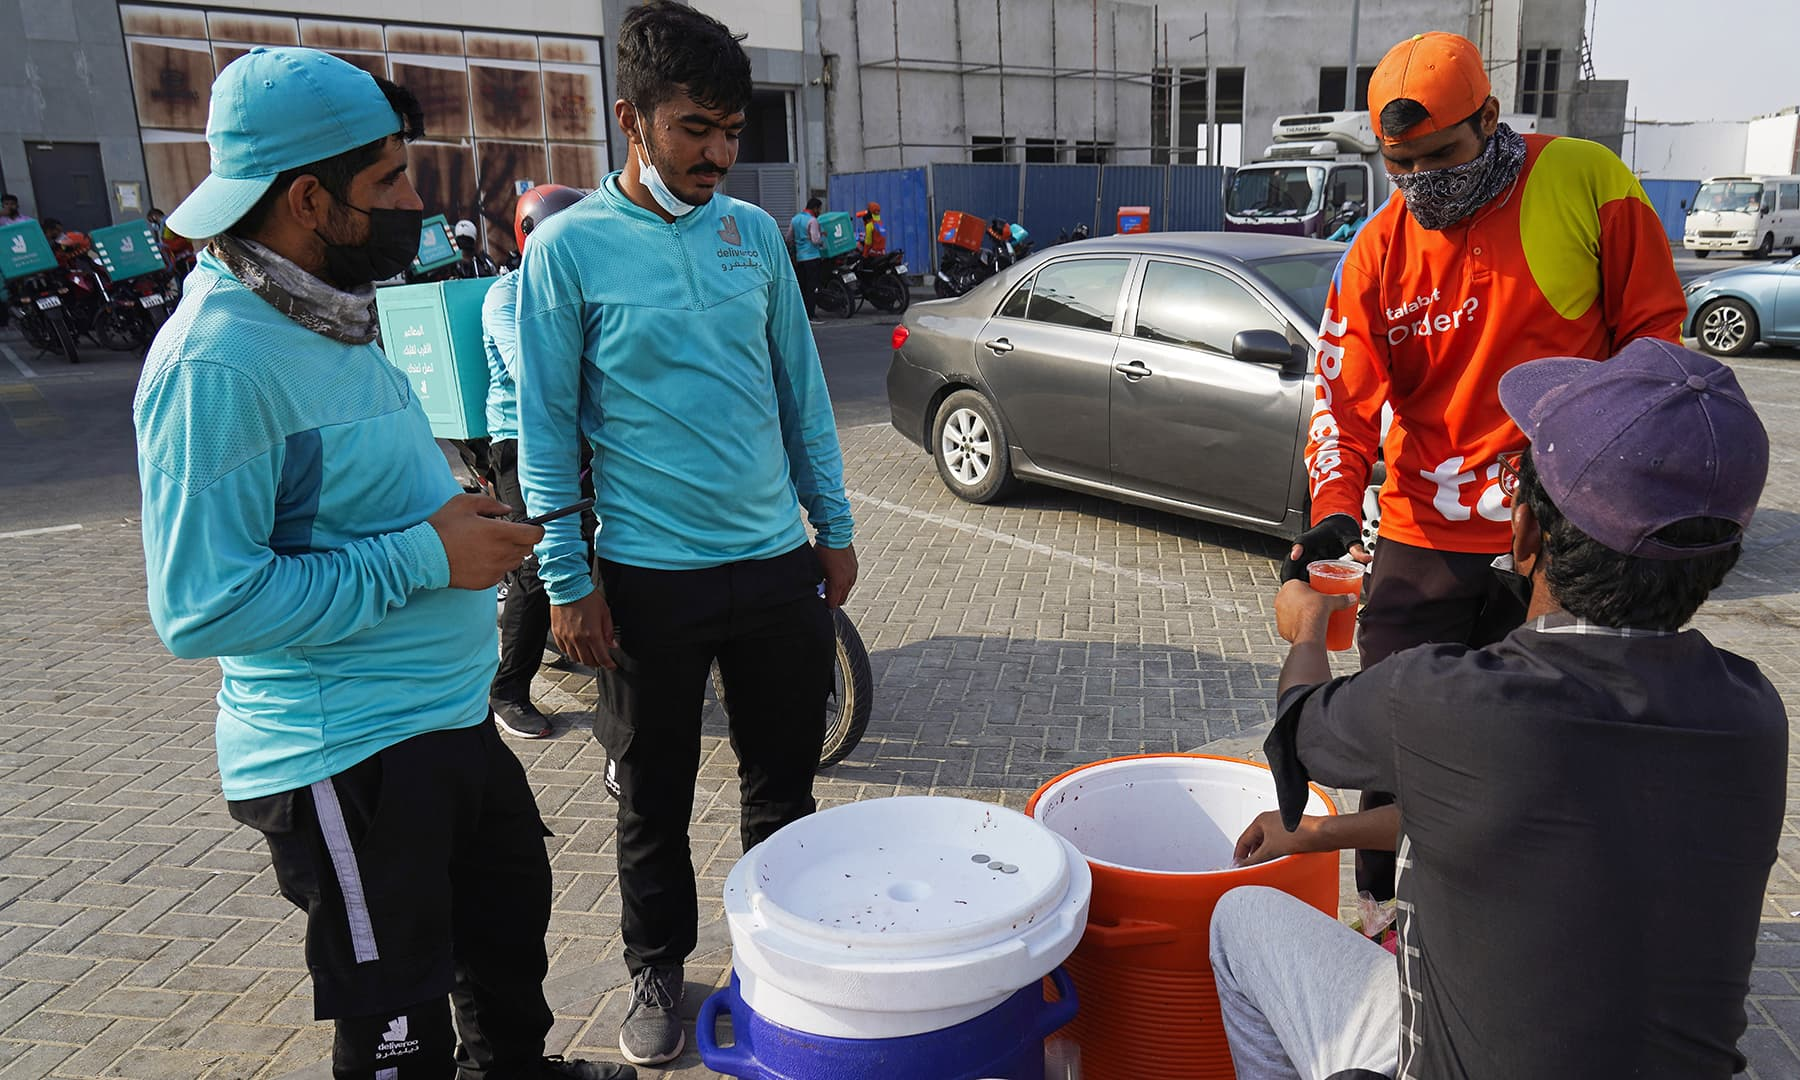 Motorcycle delivery drivers take a break and buy juice, in Dubai, United Arab Emirates, on Sept 9. — AP